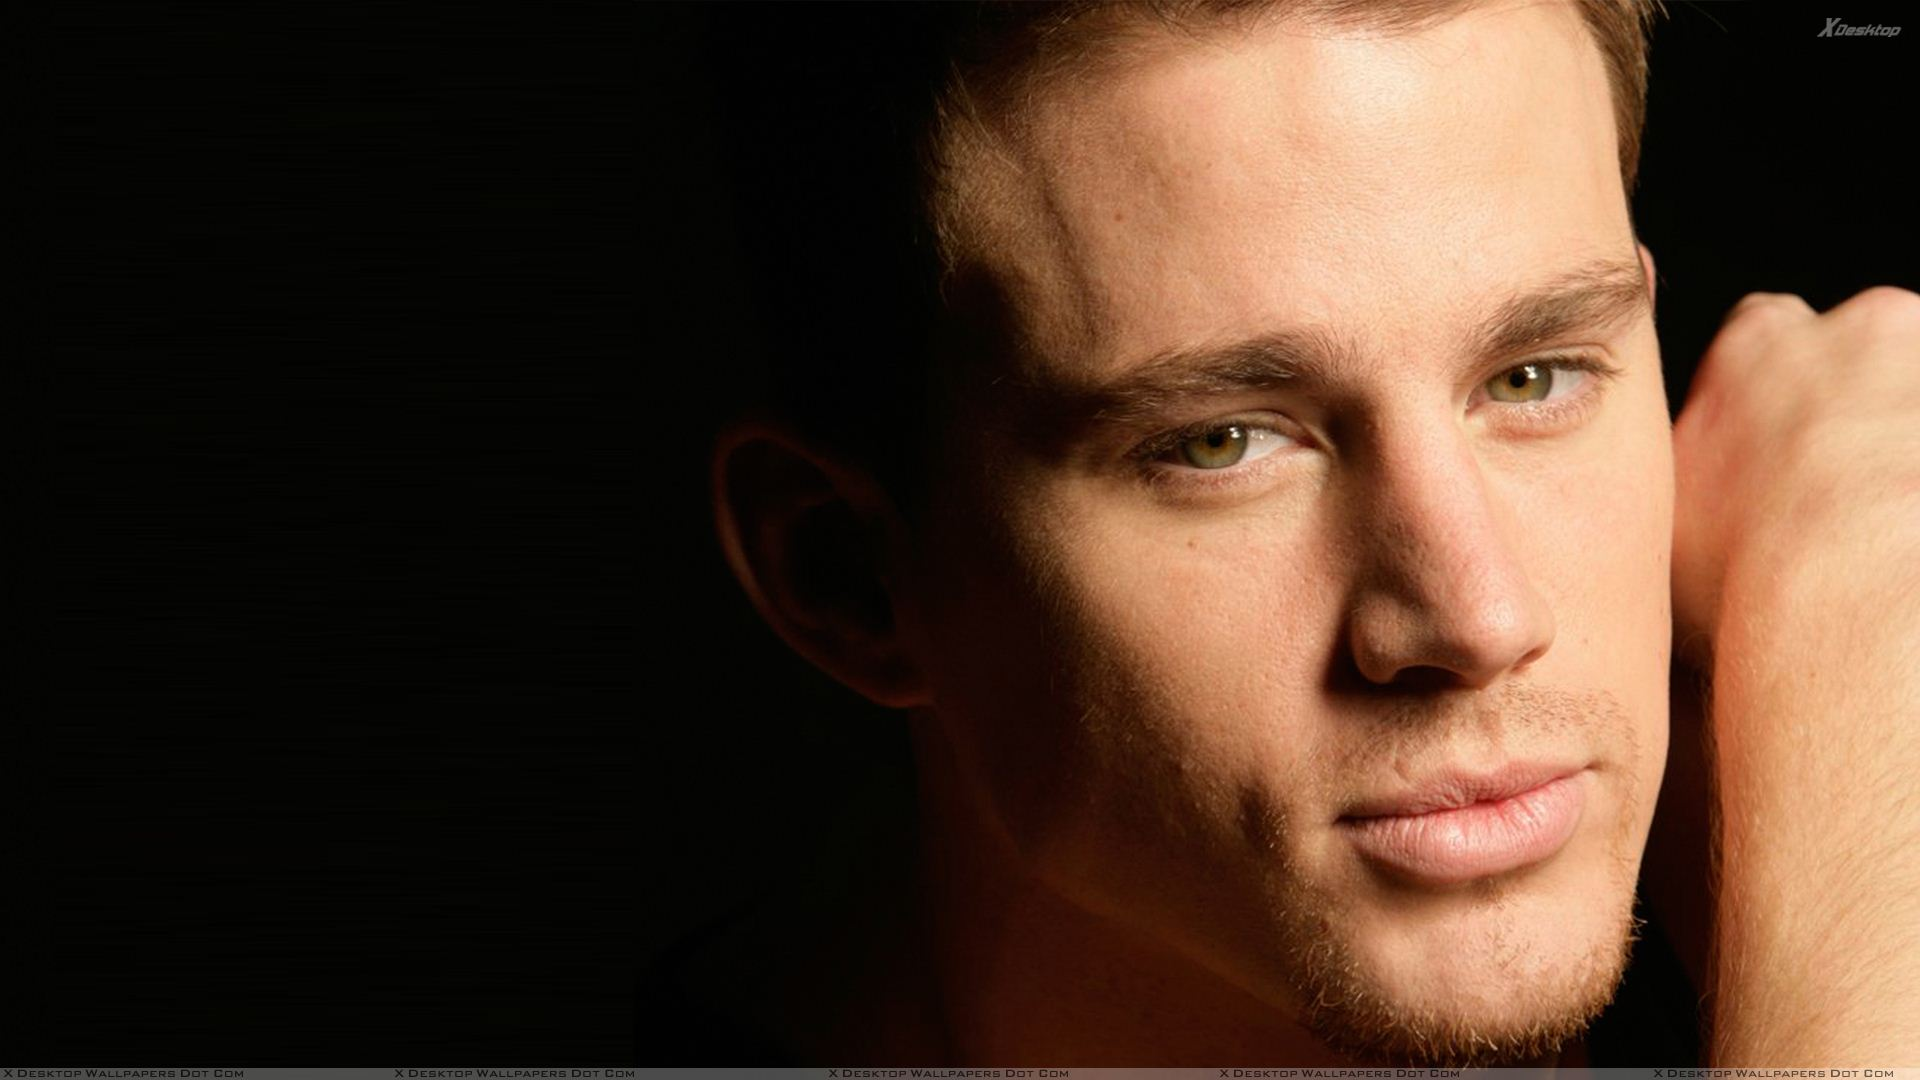 """tatum black personals Channing tatum has a new lady in his life the magic mike actor, 38, is dating singer jessie j, a source confirms to people """"it's very new,"""" the insider says tatum's rep has not."""